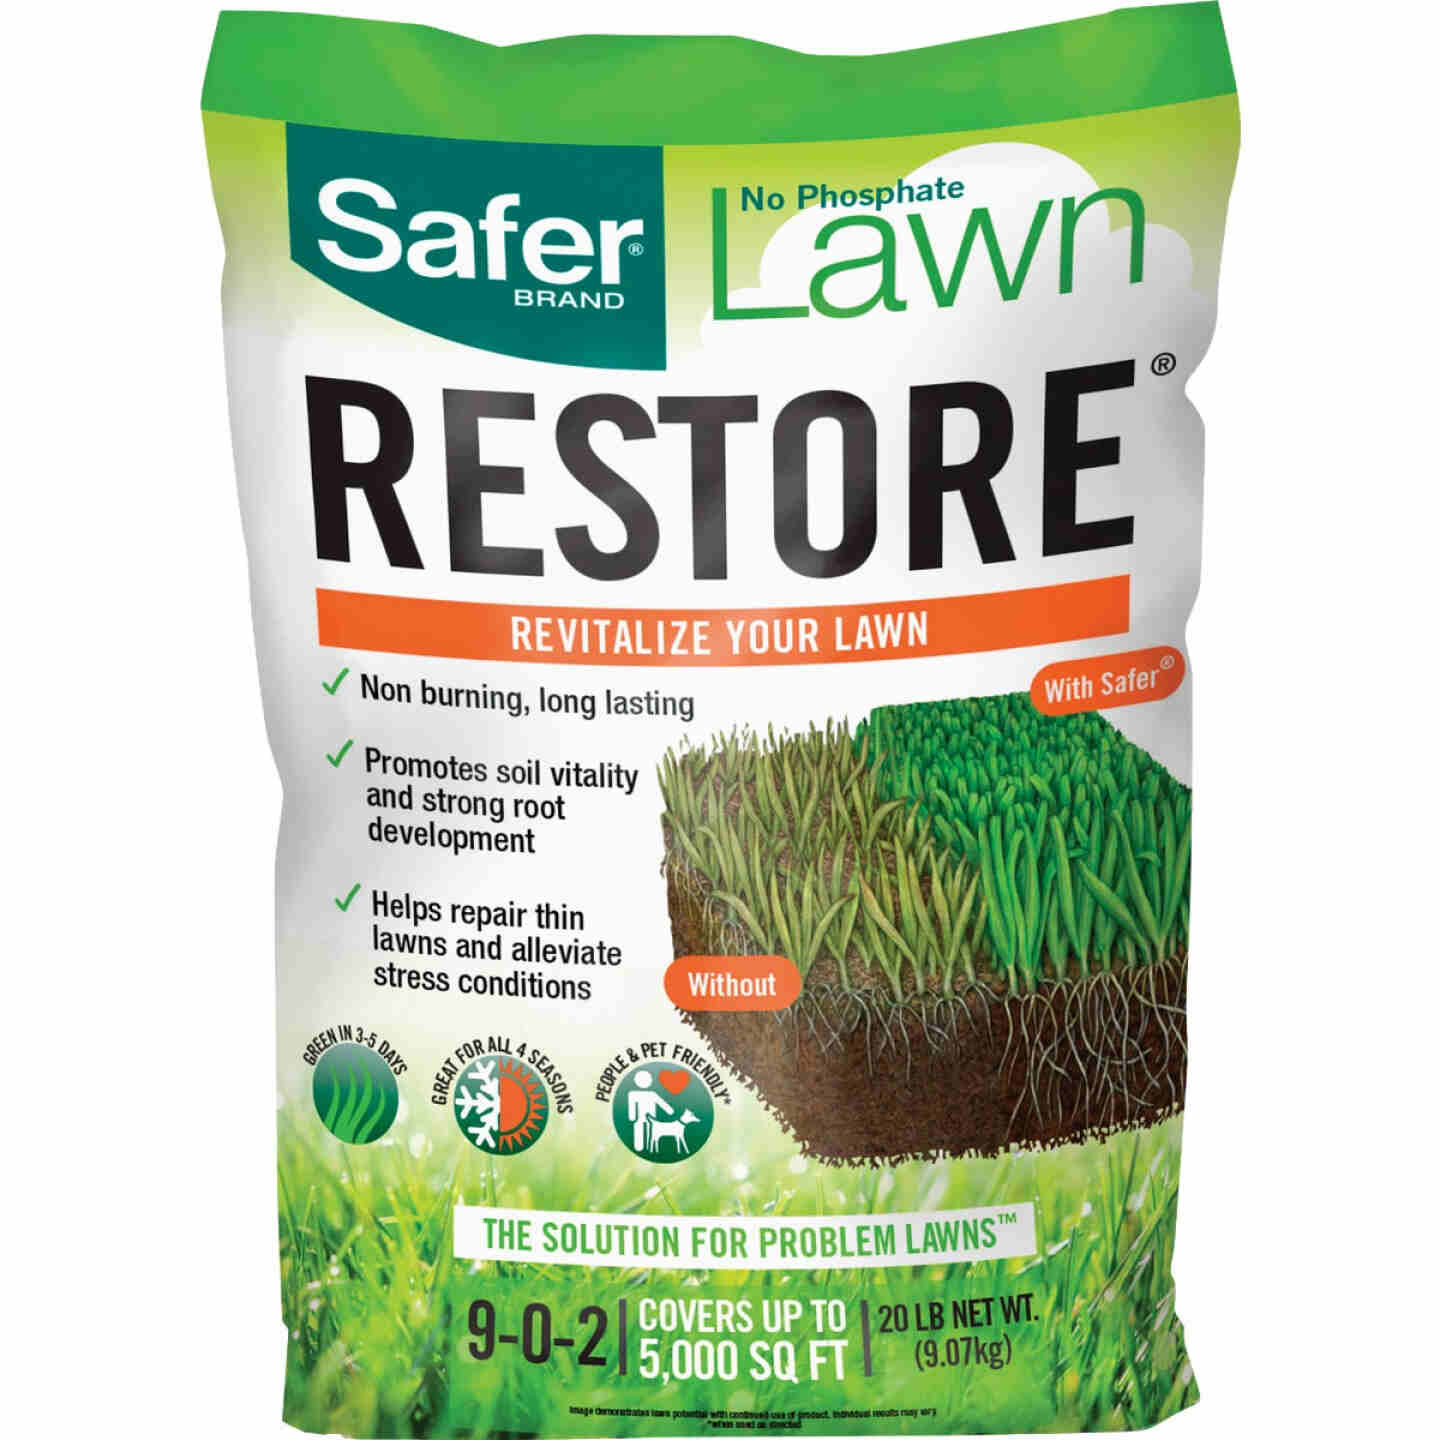 Safer Lawn Restore 20 Lb. 5000 Sq. Ft. 9-0-2 Lawn Fertilizer Image 1